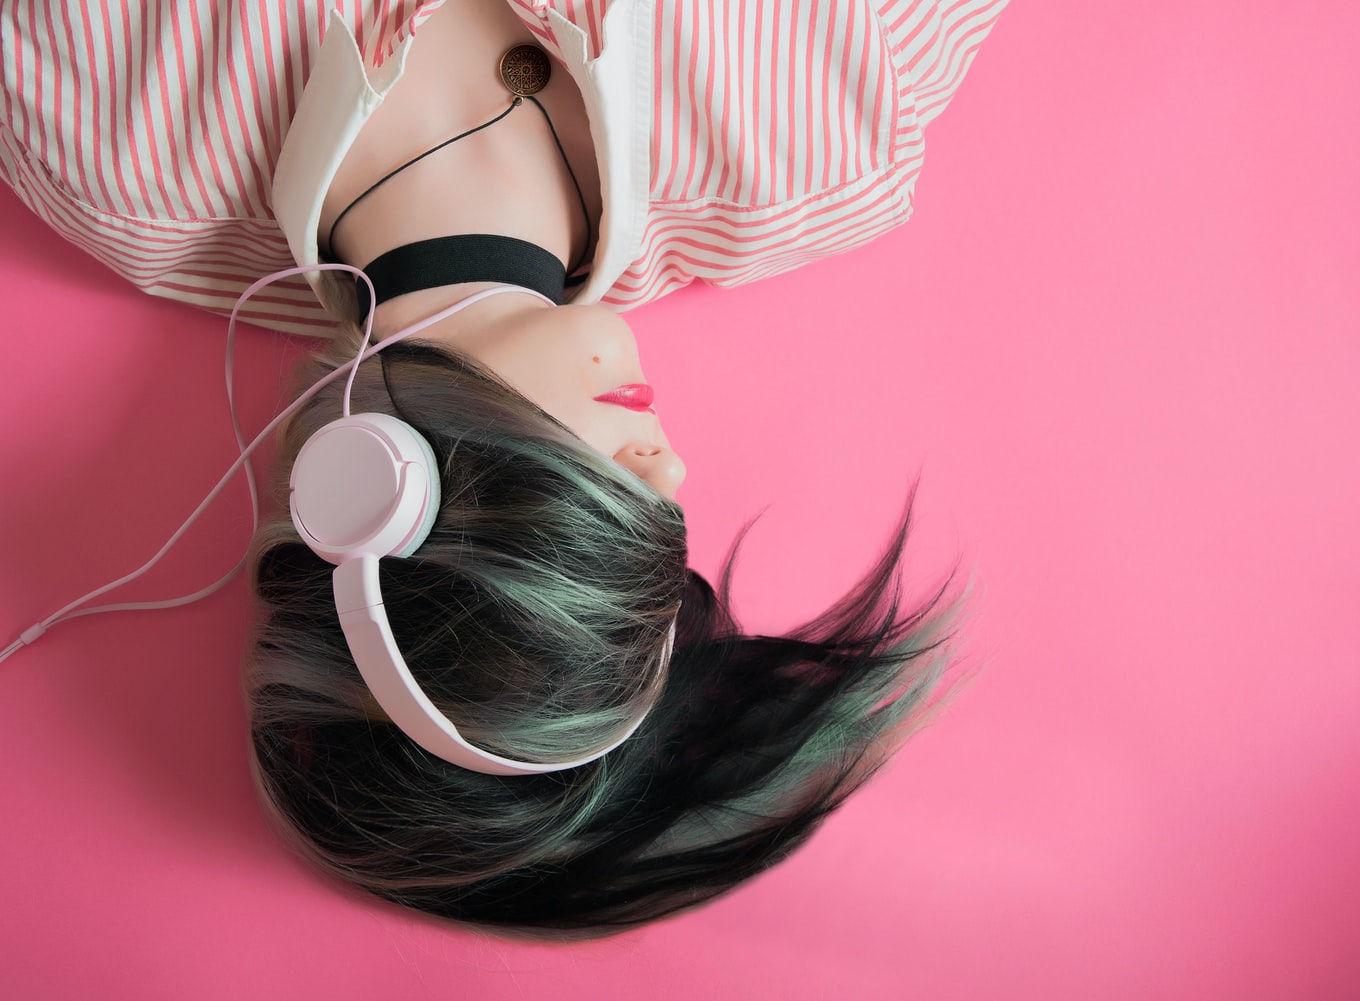 13 Podcasts To Listen To This Month